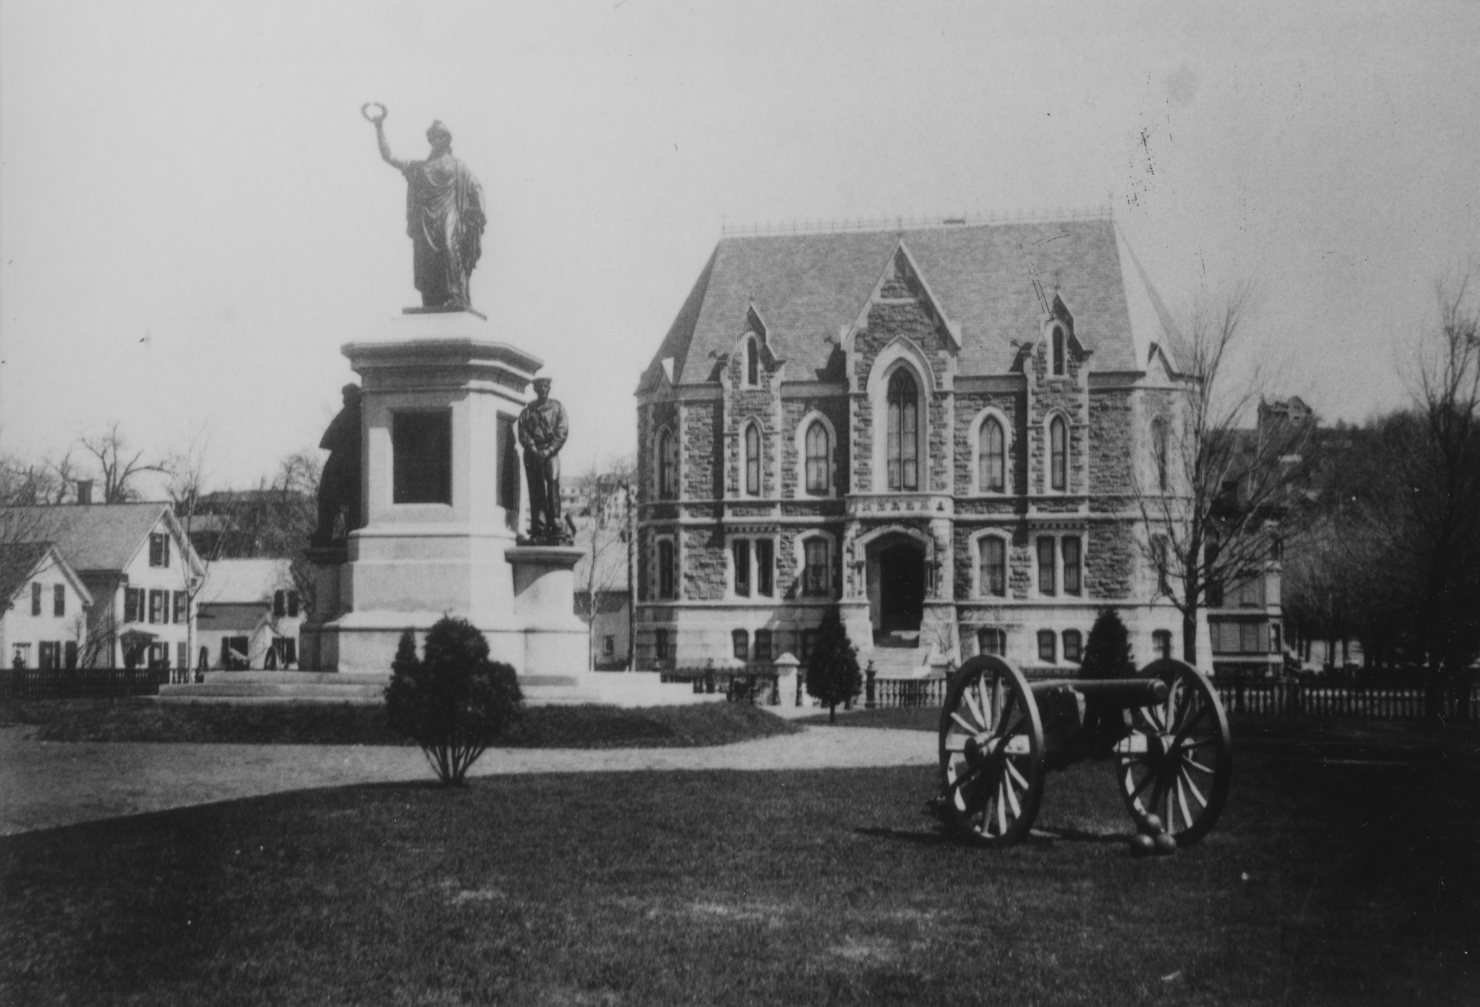 Milmore Civil War Monument, in front of County Courthouse, also 1870's